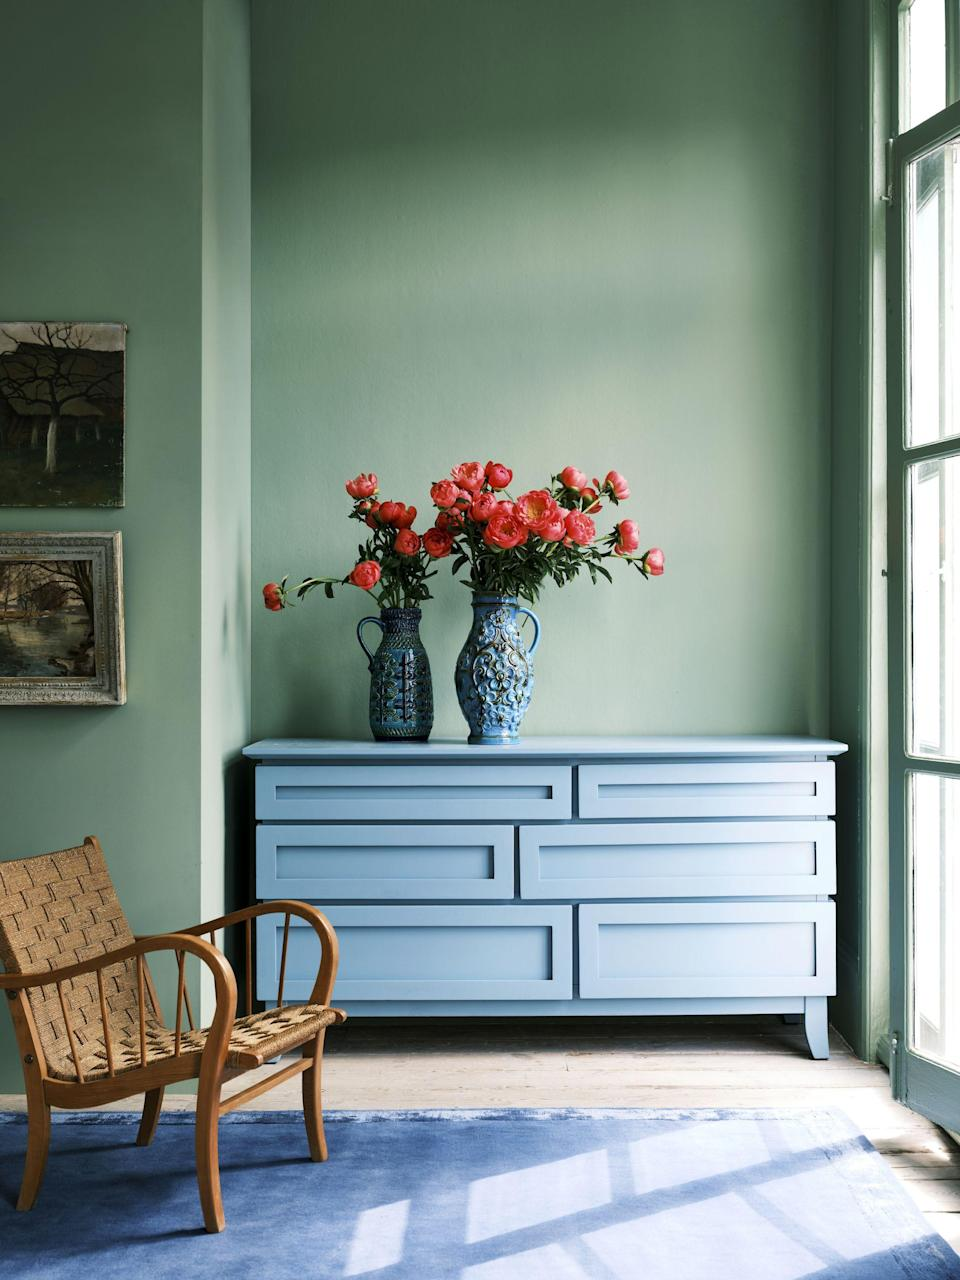 """<p><a class=""""link rapid-noclick-resp"""" href=""""https://go.redirectingat.com?id=127X1599956&url=https%3A%2F%2Fwww.farrow-ball.com%2Fpaint-colours%2Fbreakfast-room-green&sref=https%3A%2F%2Fwww.redonline.co.uk%2Finteriors%2Fdecorating-ideas%2Fg37413889%2Ffarrow-ball-colour-trends-2022%2F"""" rel=""""nofollow noopener"""" target=""""_blank"""" data-ylk=""""slk:SHOP NOW"""">SHOP NOW</a></p><p>'Using one colour on both walls and woodwork, such as lively Breakfast Room Green, can make a room look bigger by disguising the limits of the space. The bold use of this one colour also creates an exceptional background for art, or for furniture which can be upcycled with a lick of Modern Eggshell.</p><p>'The combination here of Breakfast Room Green and Stone Blue feels both arresting and familiar, while the chalky matt finish of our signature Estate Emulsion on the walls shows these colours at their very best as the light changes through the day.'</p>"""